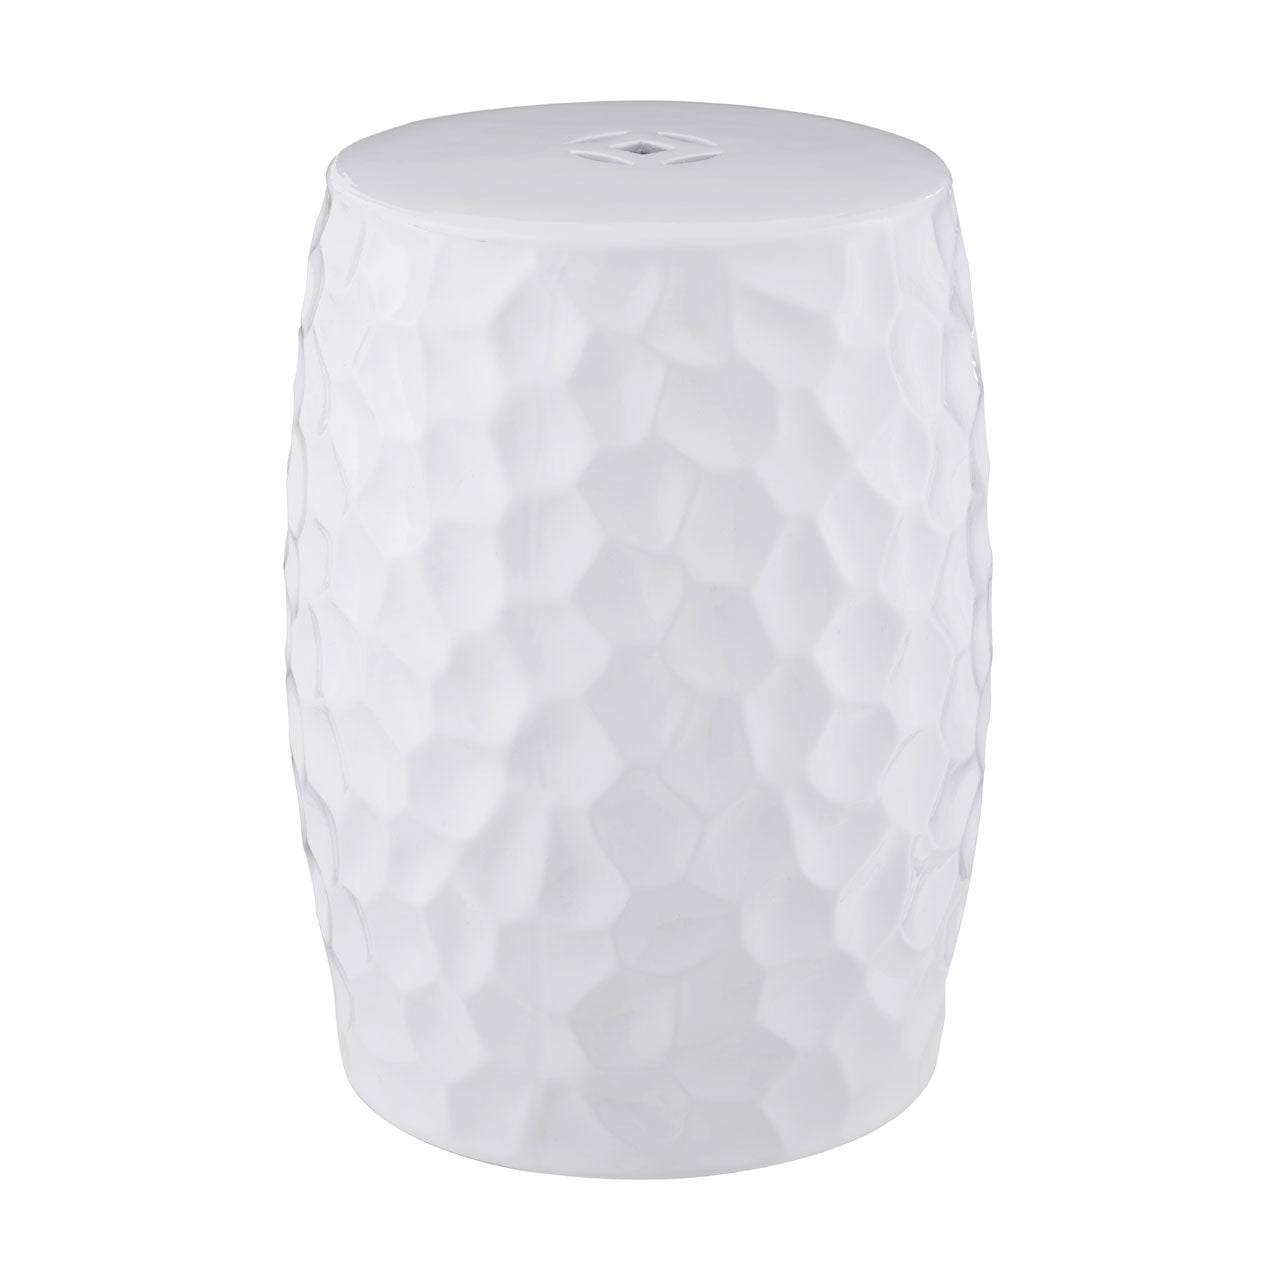 Complements Ceramic Stool in White - Ezzo